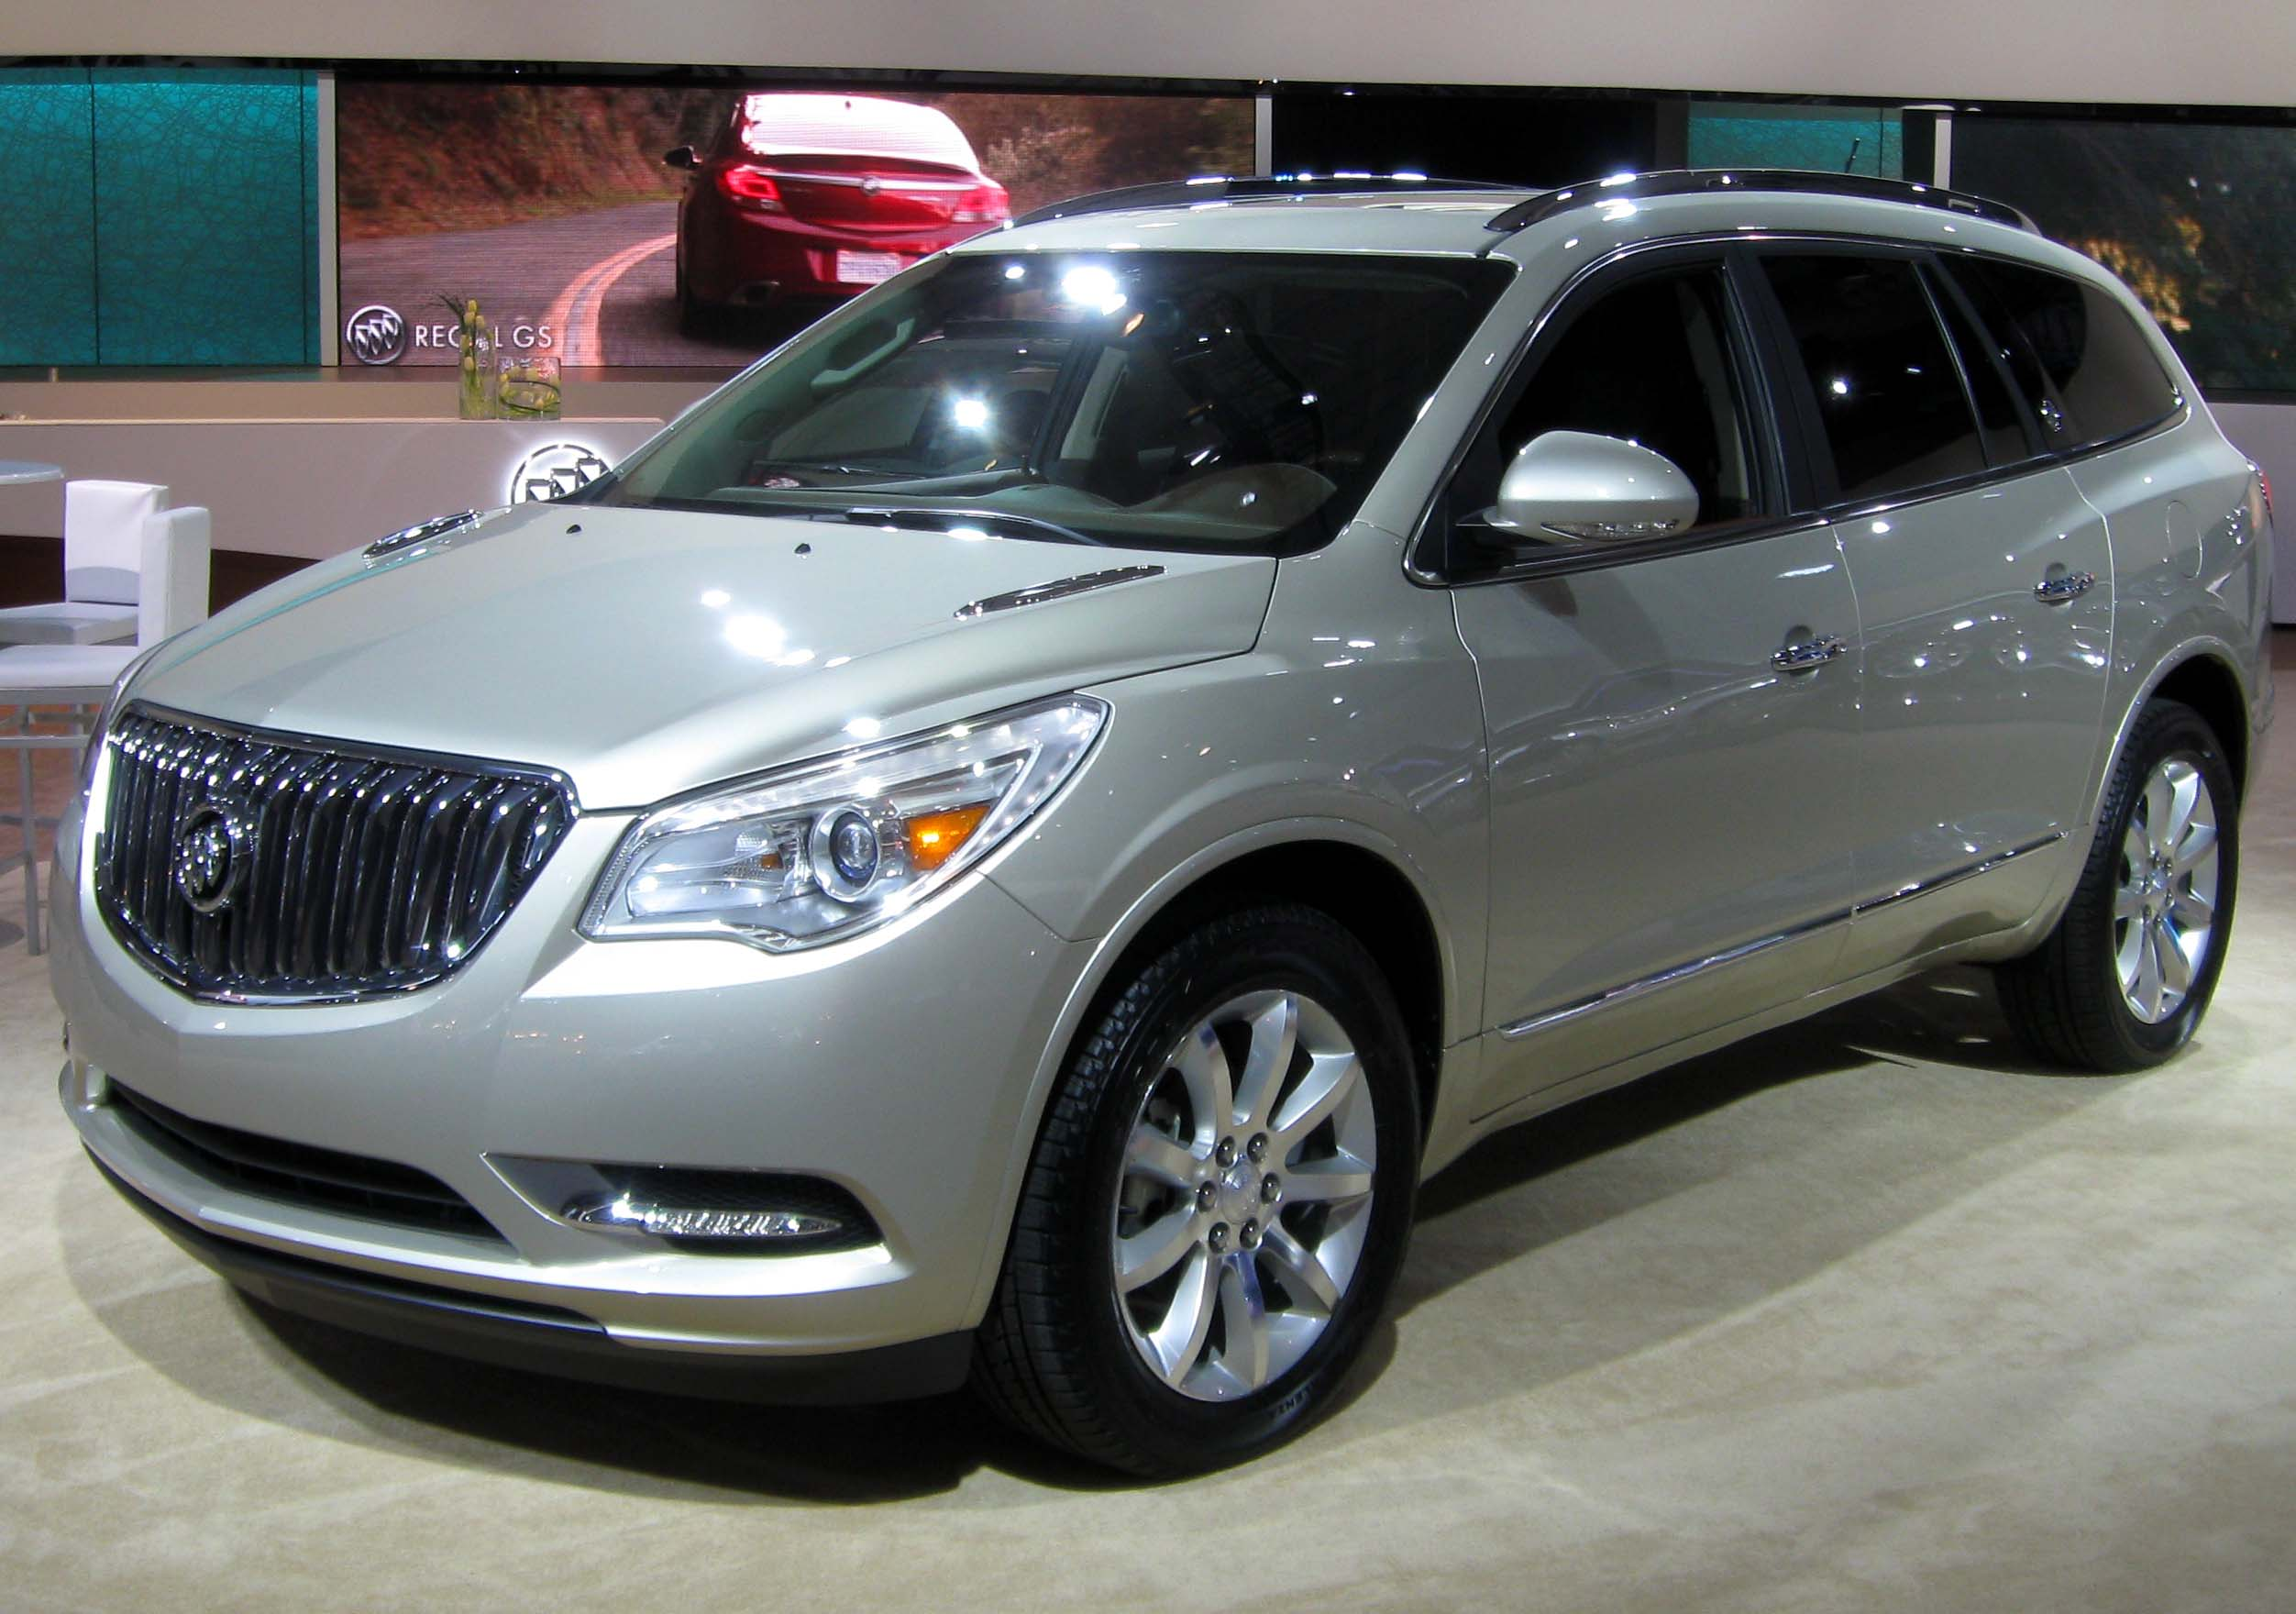 buick enclave 2012 review amazing pictures and images look at the car. Black Bedroom Furniture Sets. Home Design Ideas